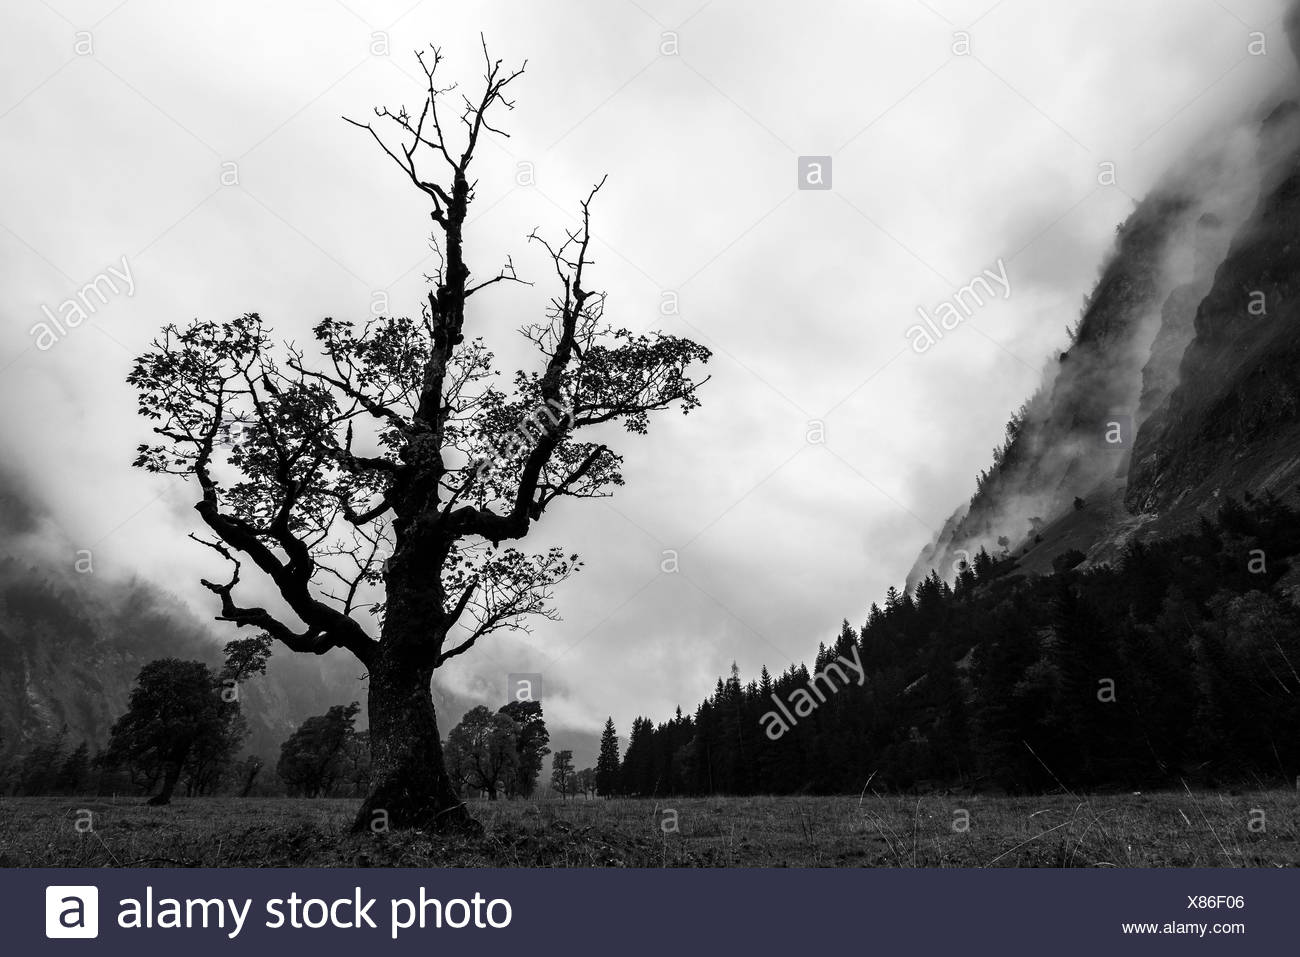 An old maple tree with the last autumn foliage stretches itself gloomily to cloudy sky. - Stock Image